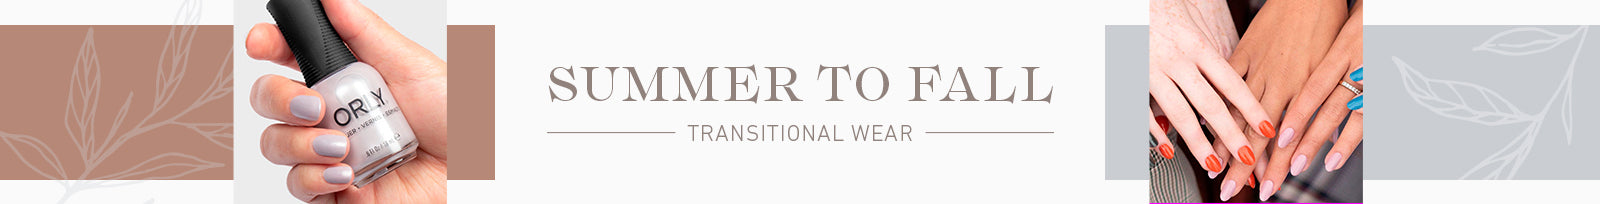 Transitional Wear - Summer to Fall